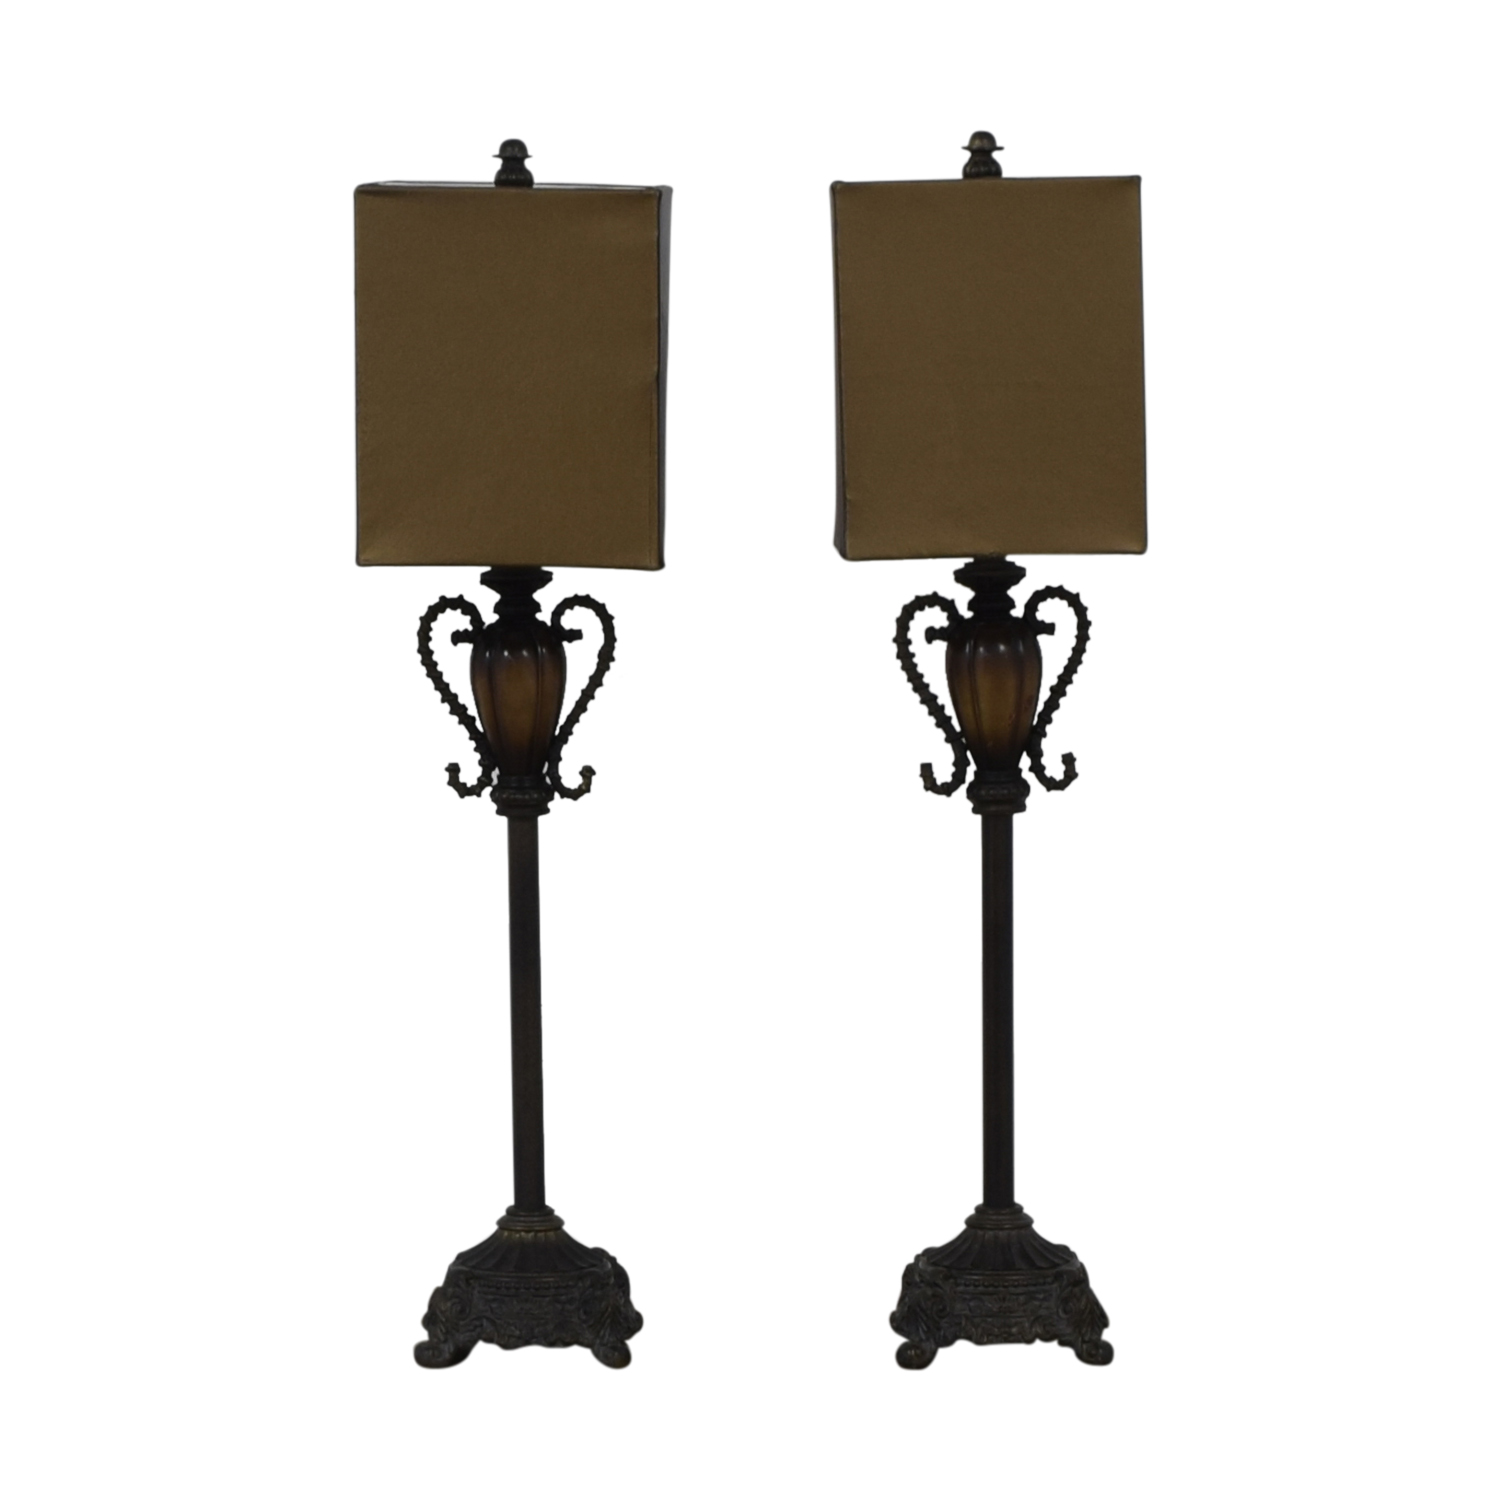 buy Brass and Leather Lamps Neiman Marcus Lamps